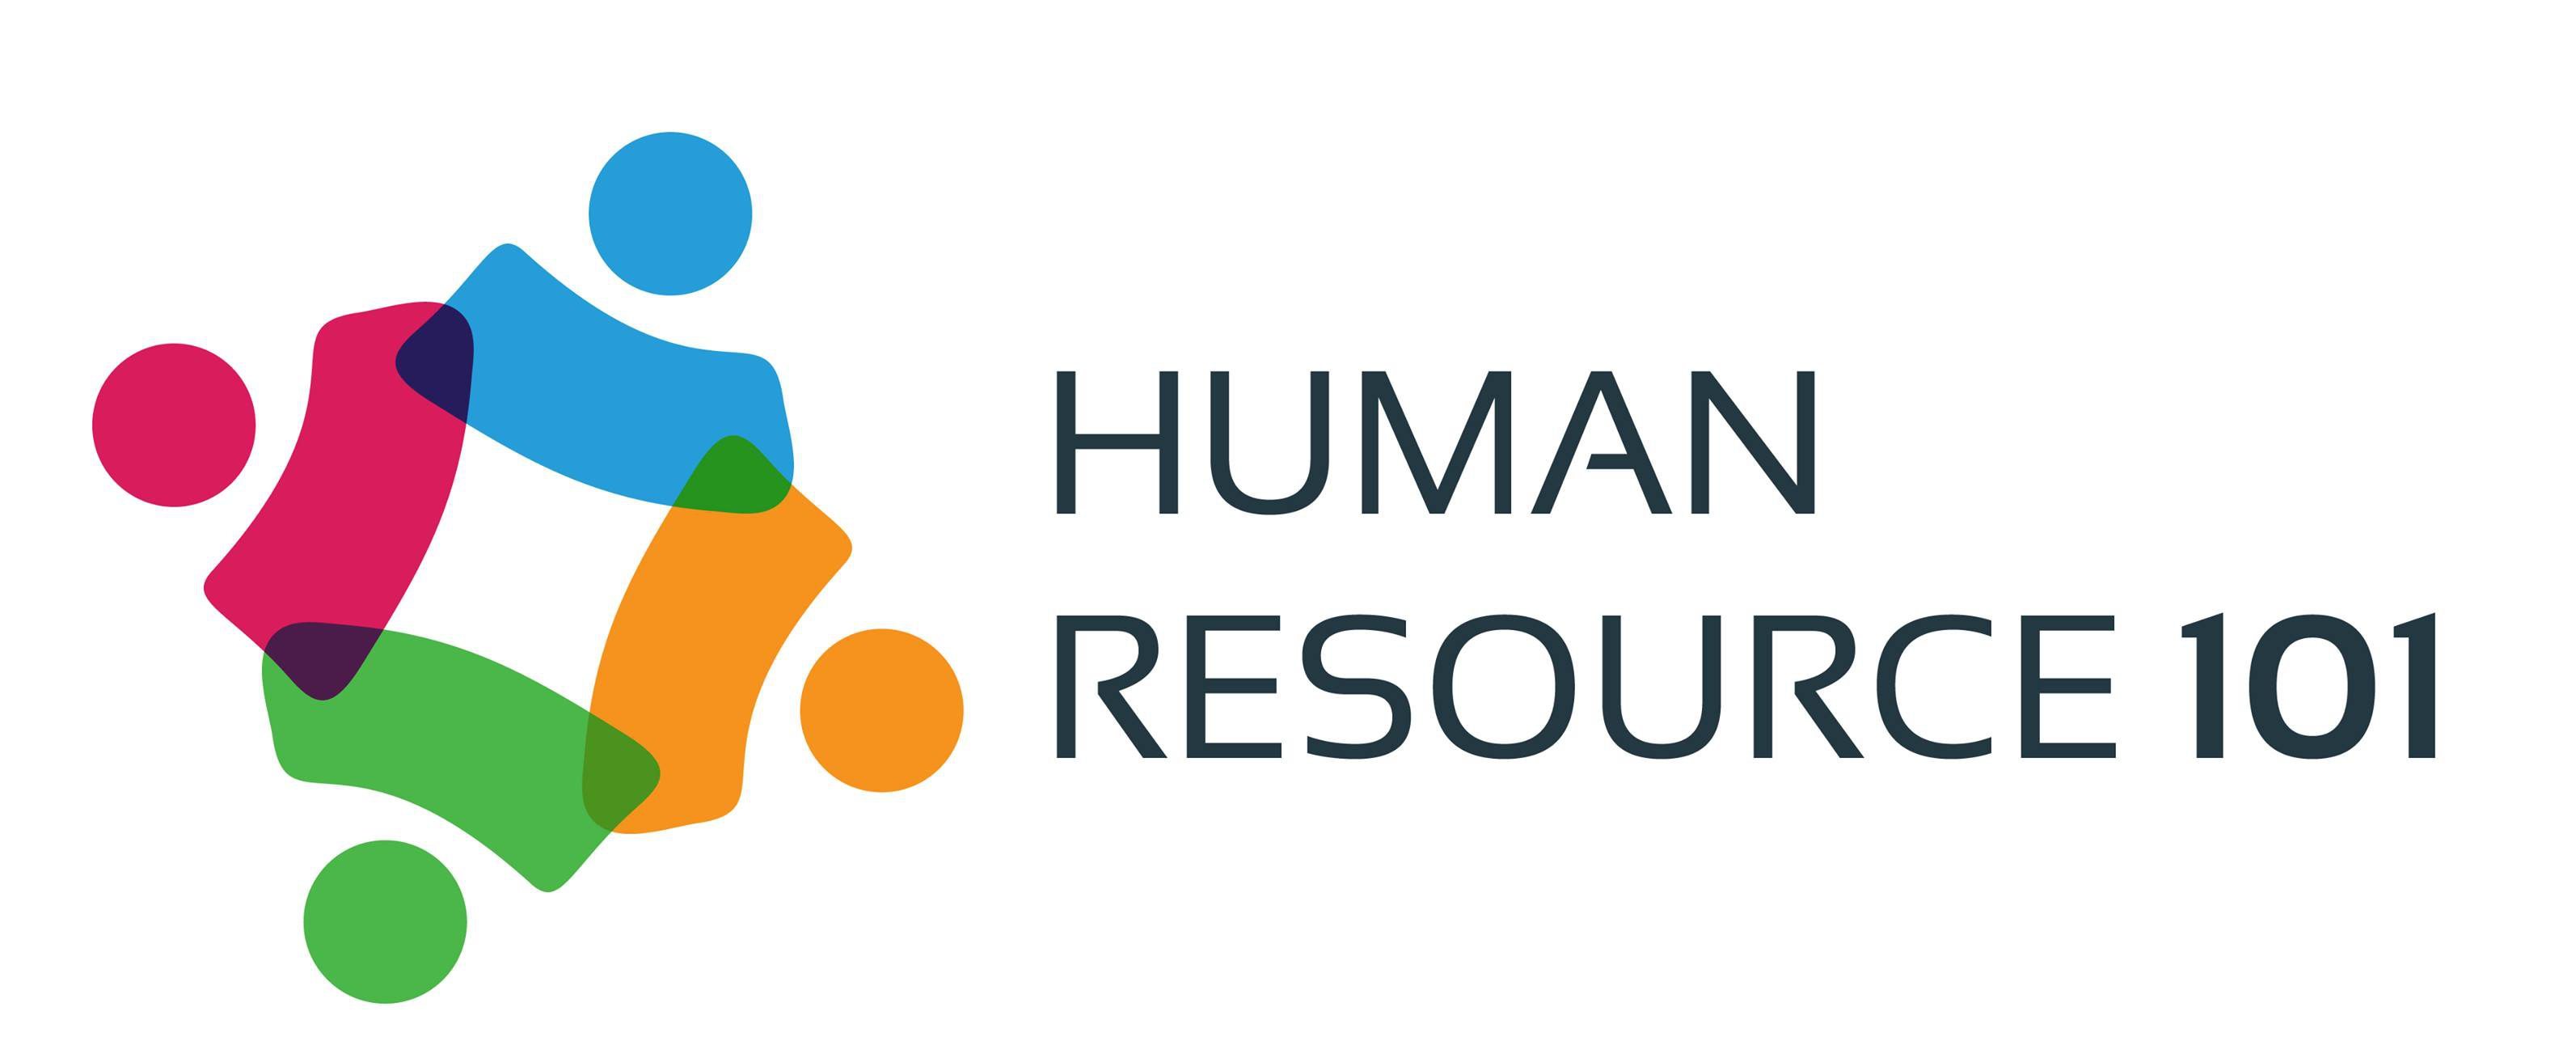 Human Resource 101 Consulting Limited